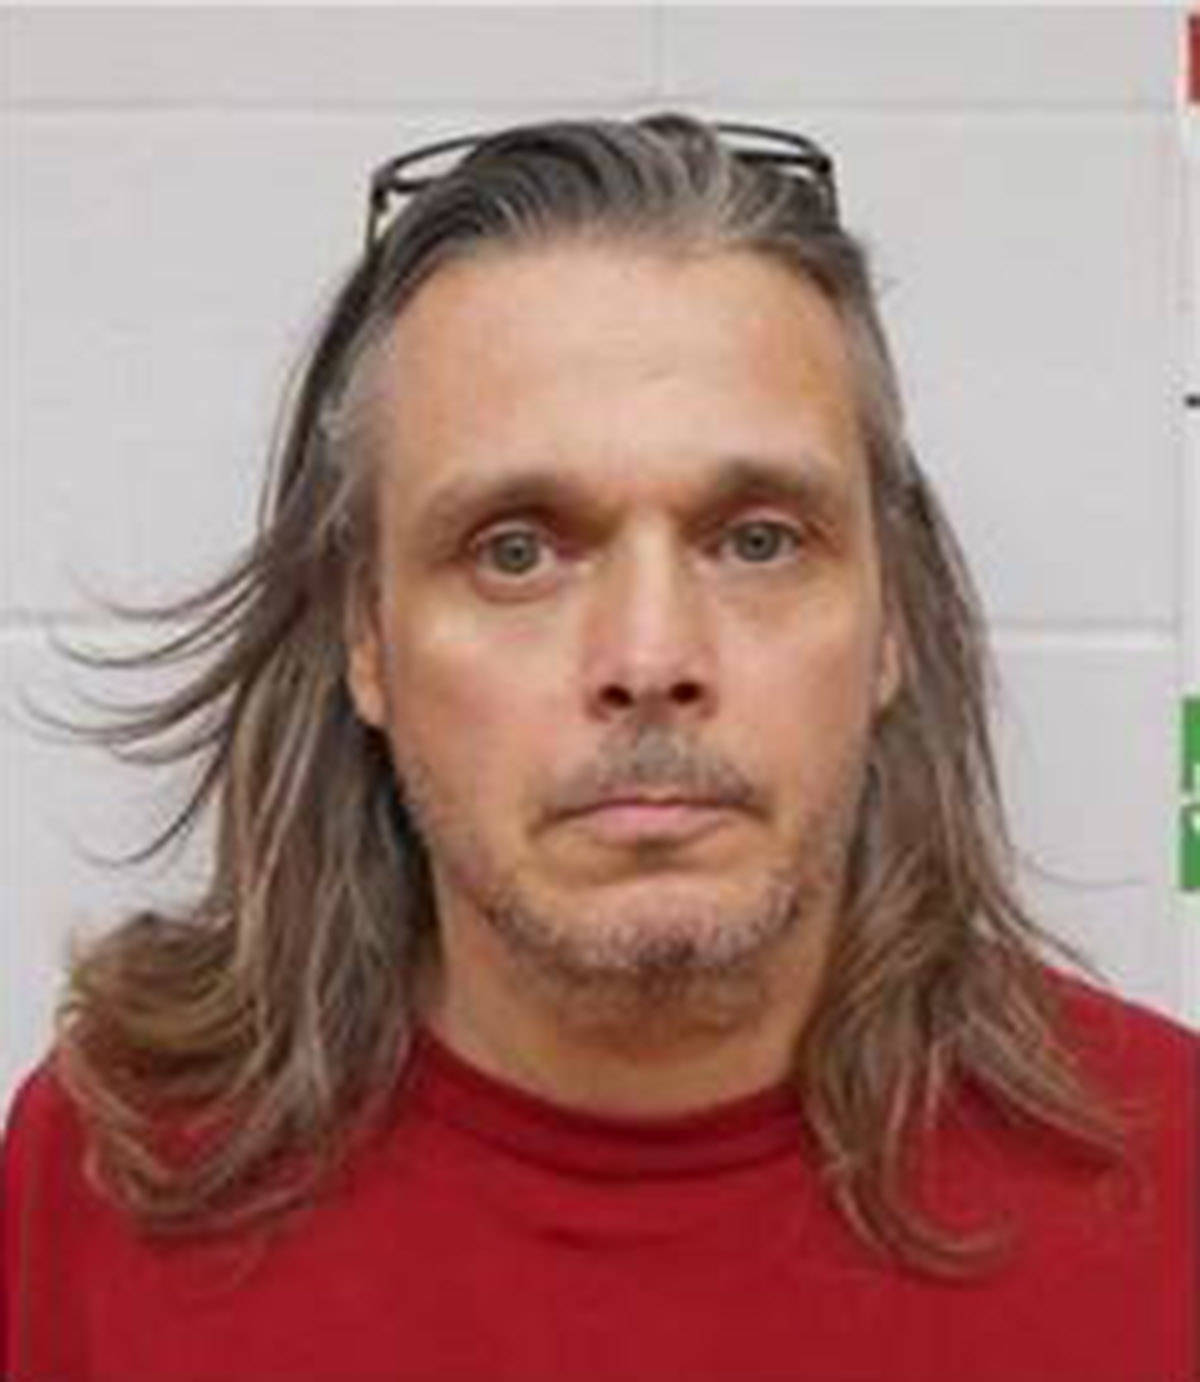 """Name: BONSELL, Mark Age: 53 Height: 5'9"""" ft Weight: 190 lbs Hair: Grey Eyes: Hazel Wanted: Unlawfully at Large Warrant in effect: July 8, 2021 Parole Jurisdiction: New Westminster, BC"""